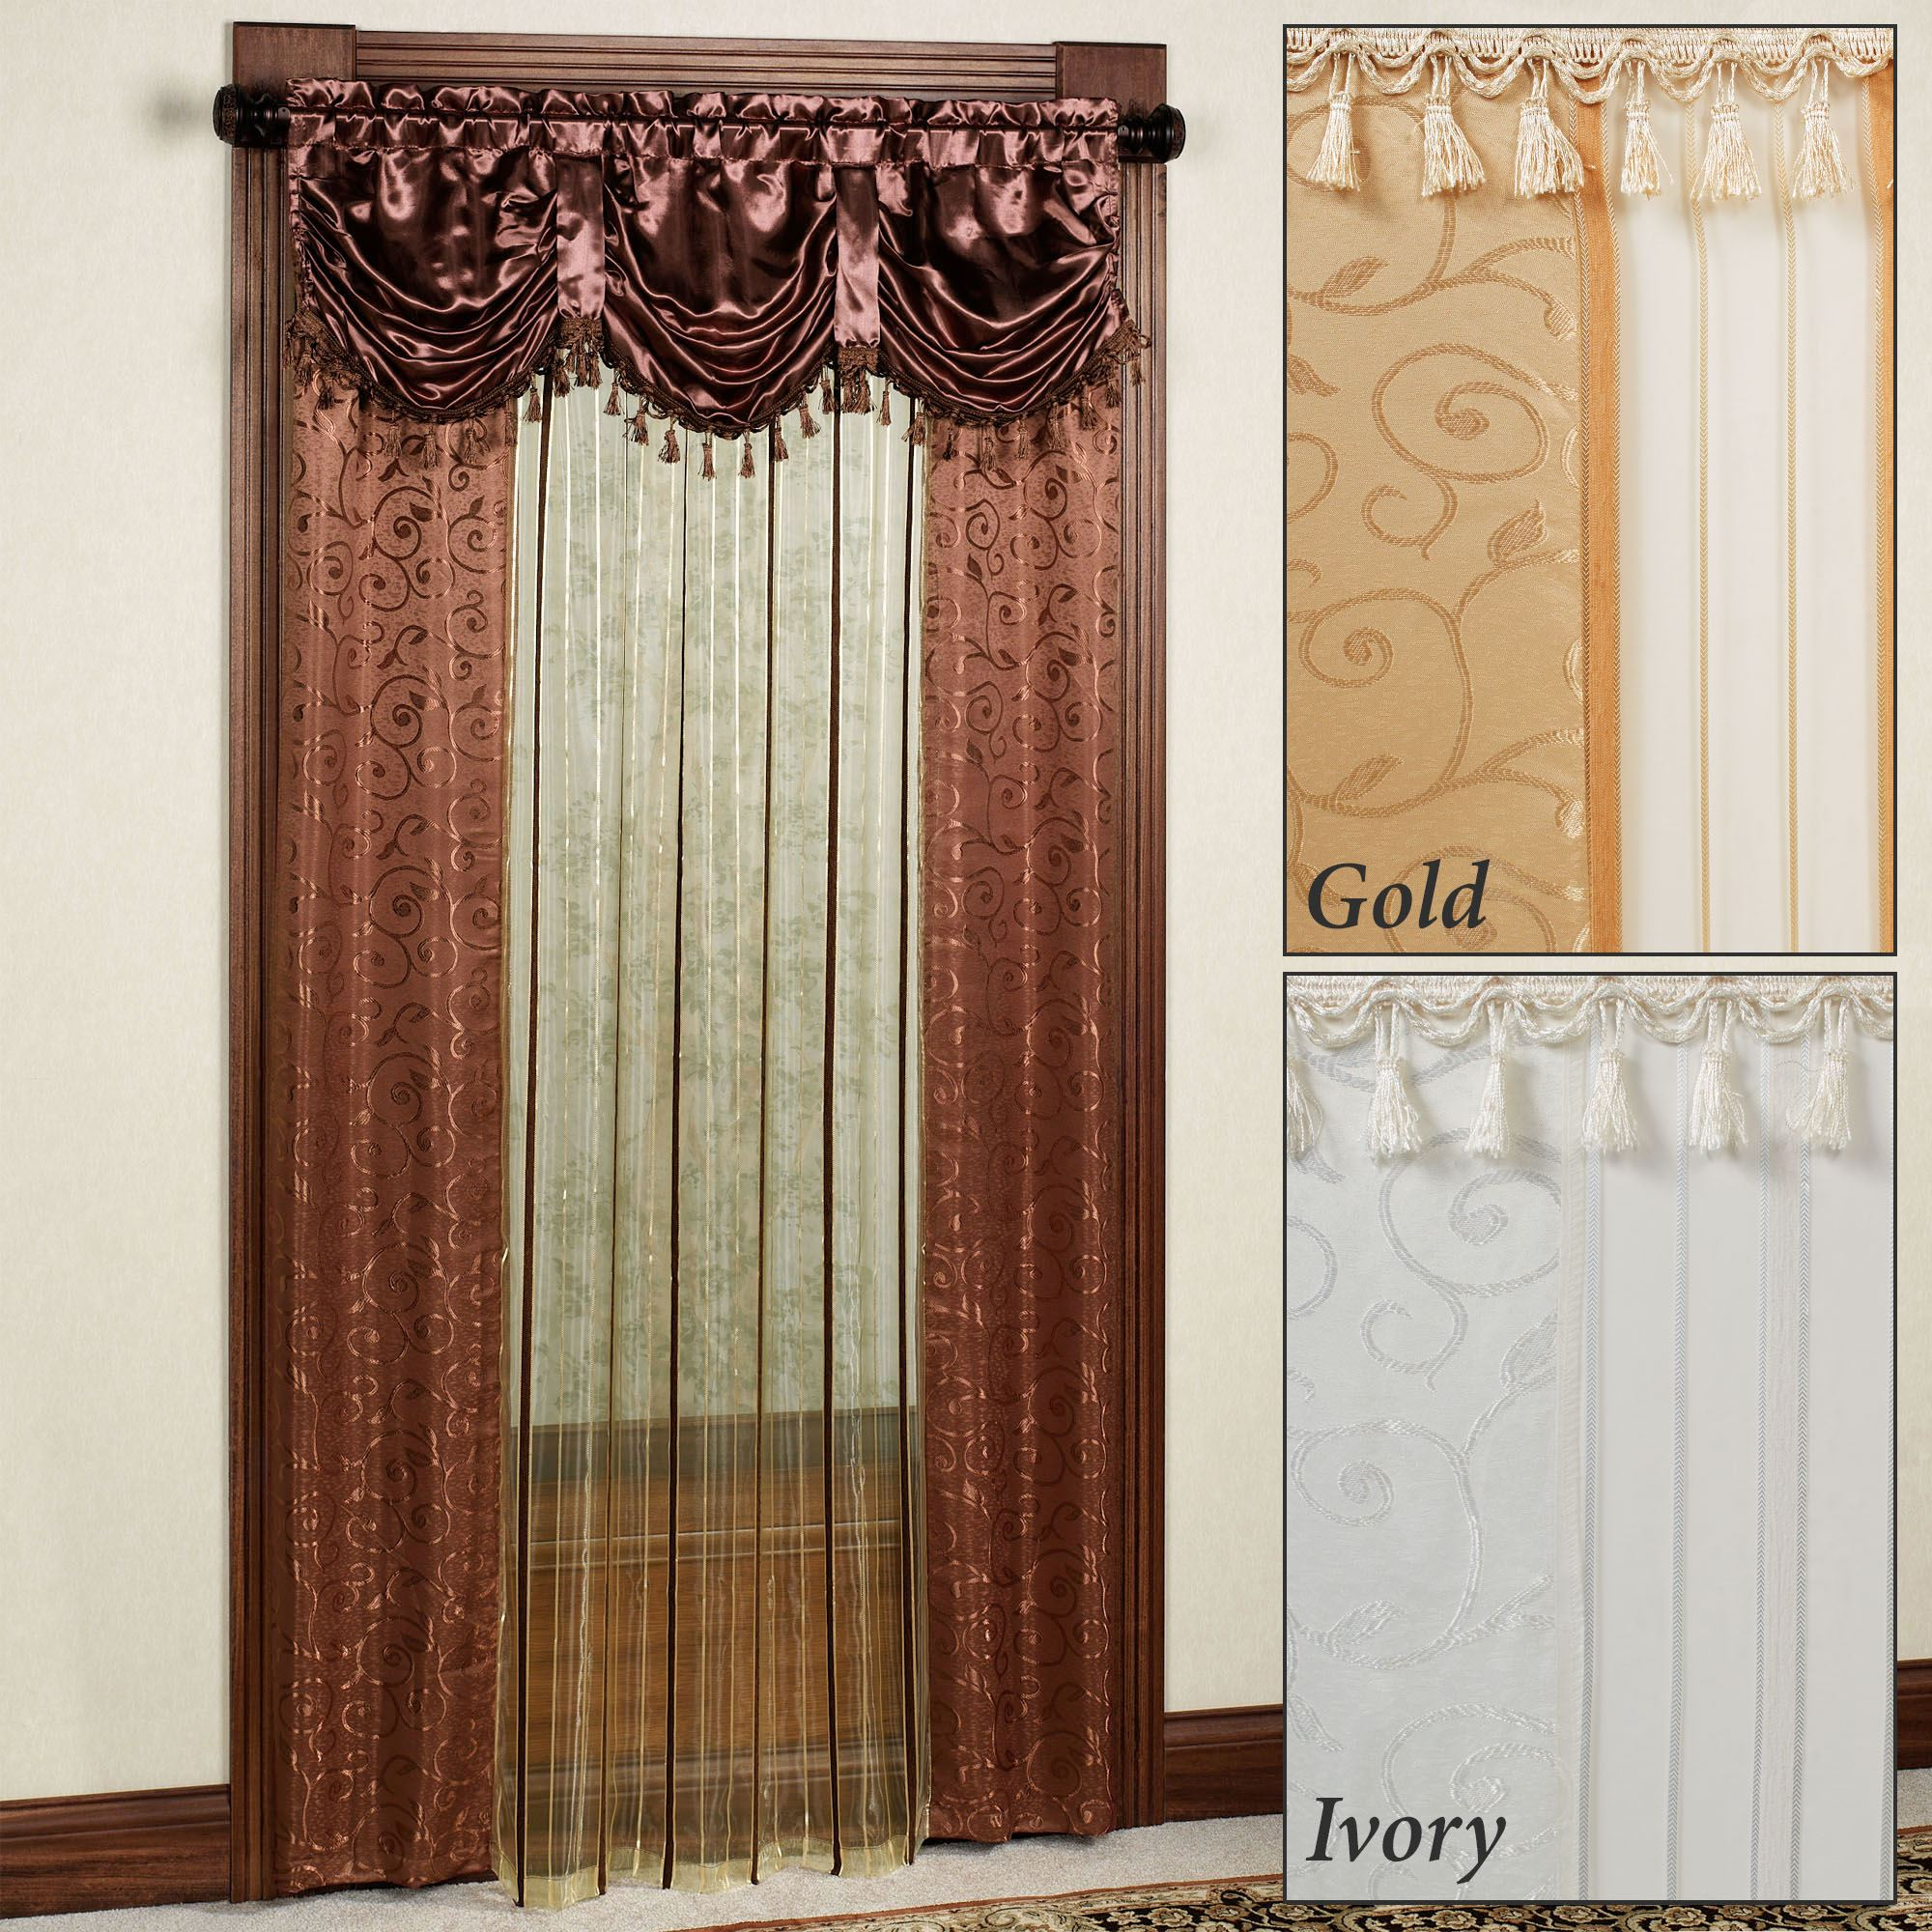 curtains with attached valance Tango Sheer Curtain Panel with Attached Valance curtains with attached valance